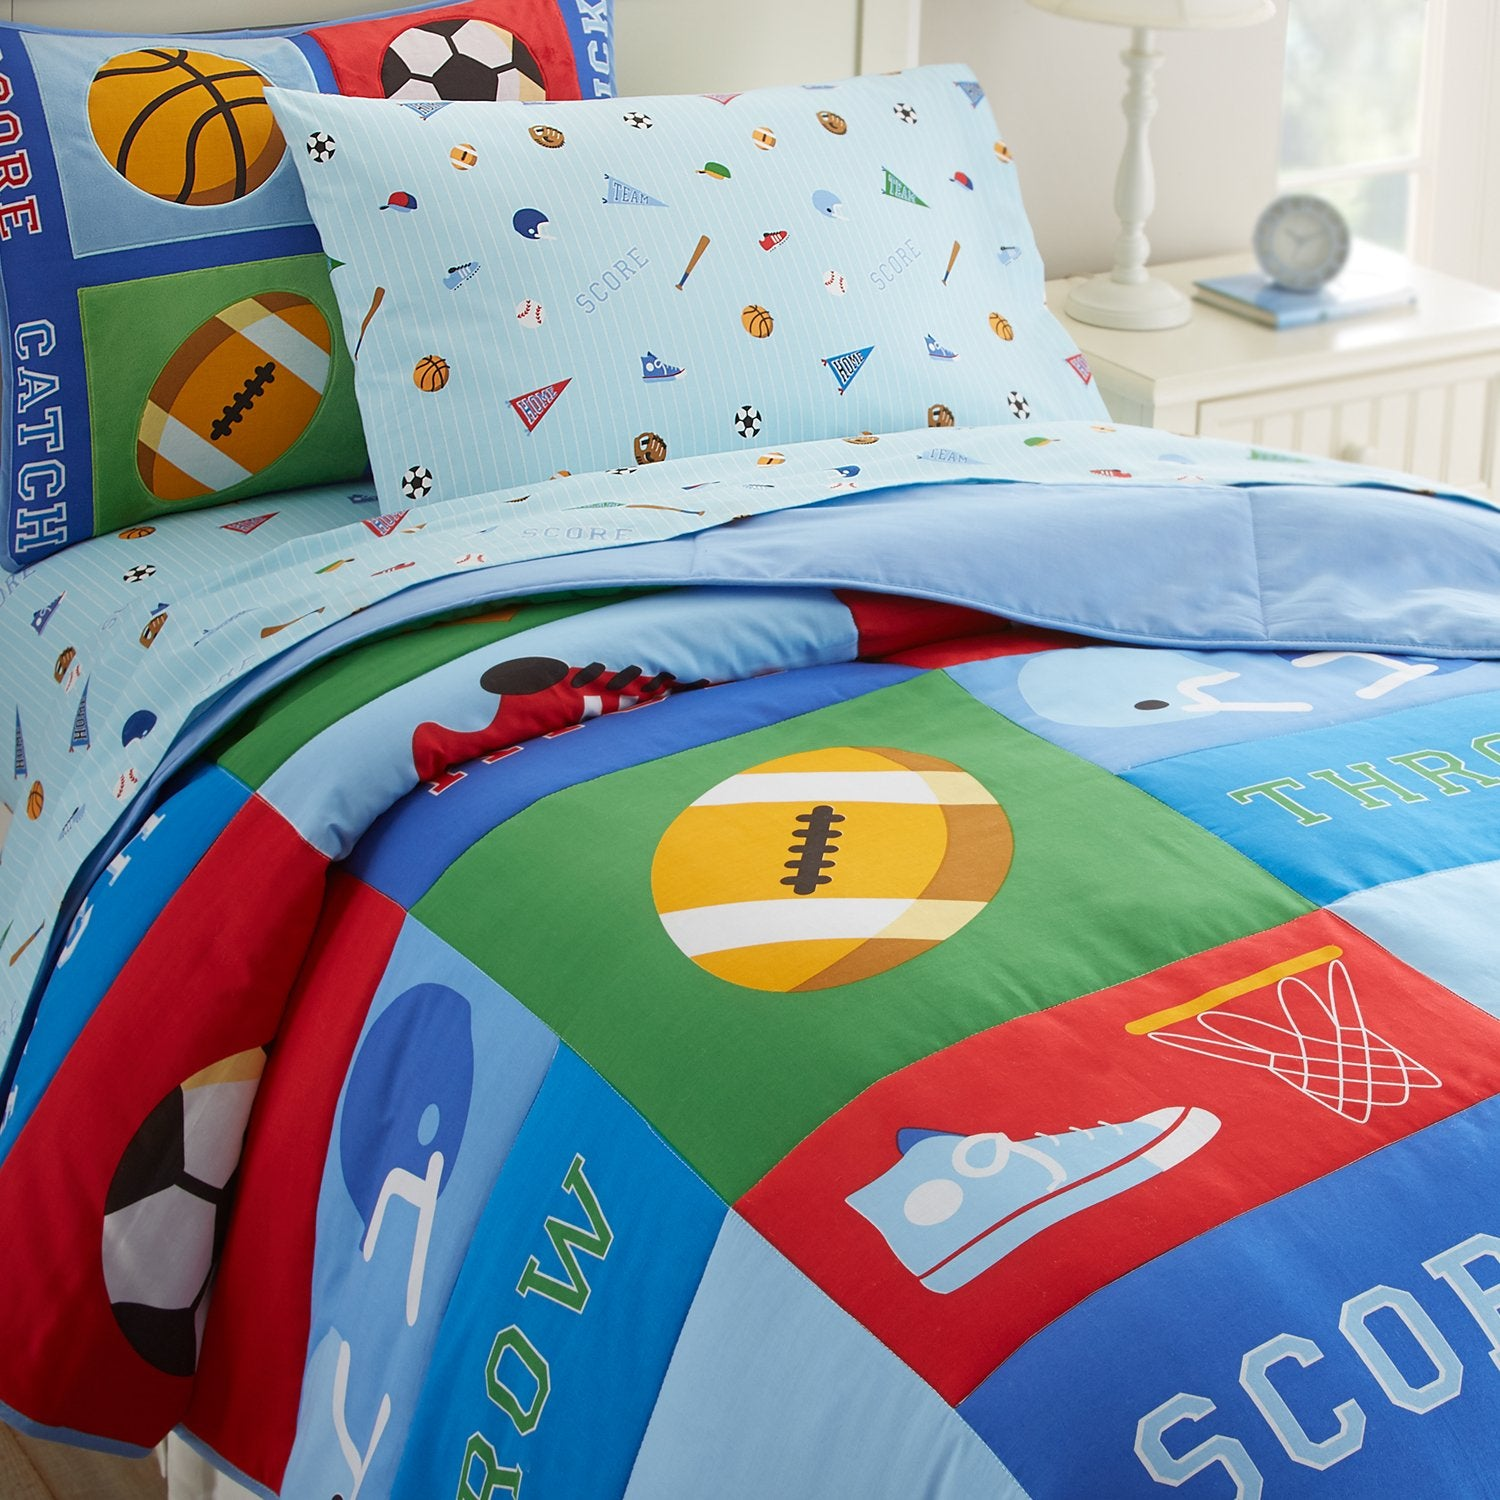 Game On Comforter Set with Sheets